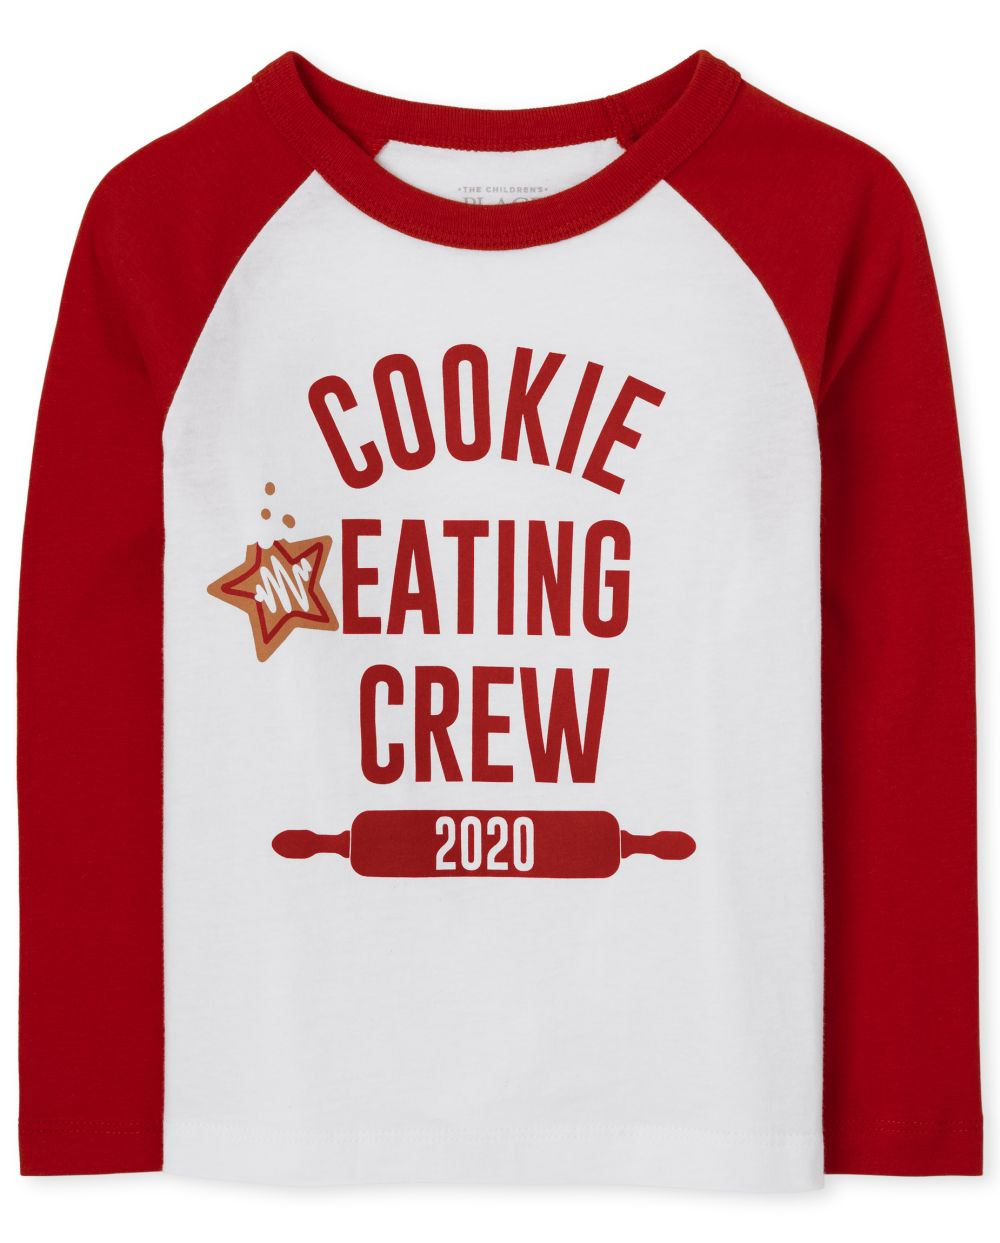 Unisex Baby And Toddler Matching Family Baking Crew Graphic Tee